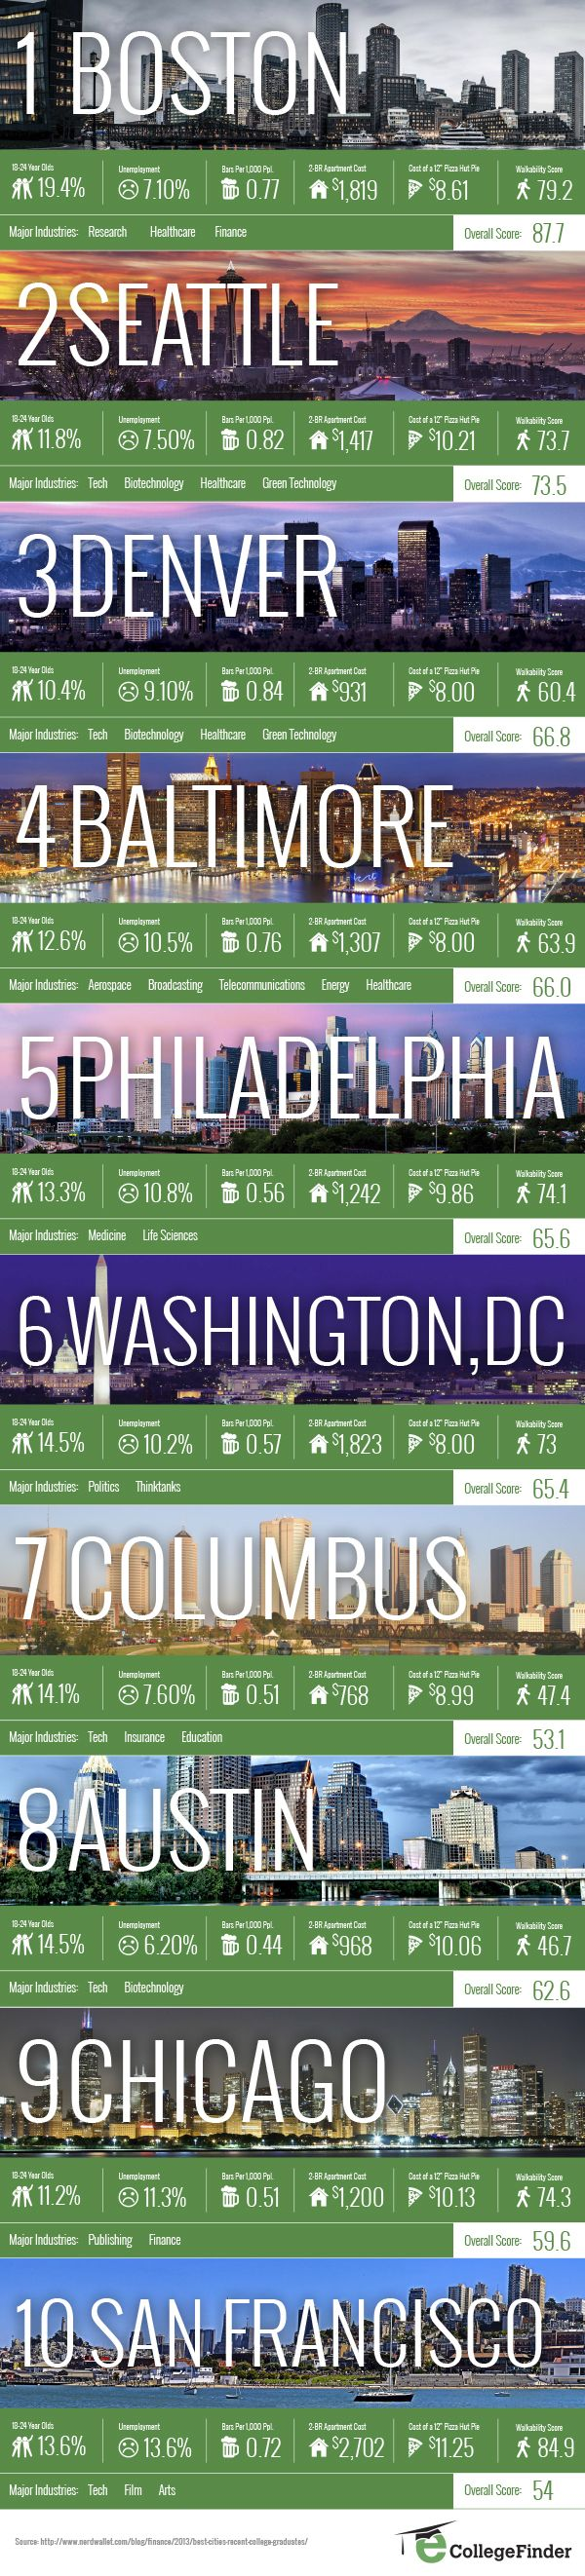 best cities for recent graduates - hopefully going to law school in one of these cities